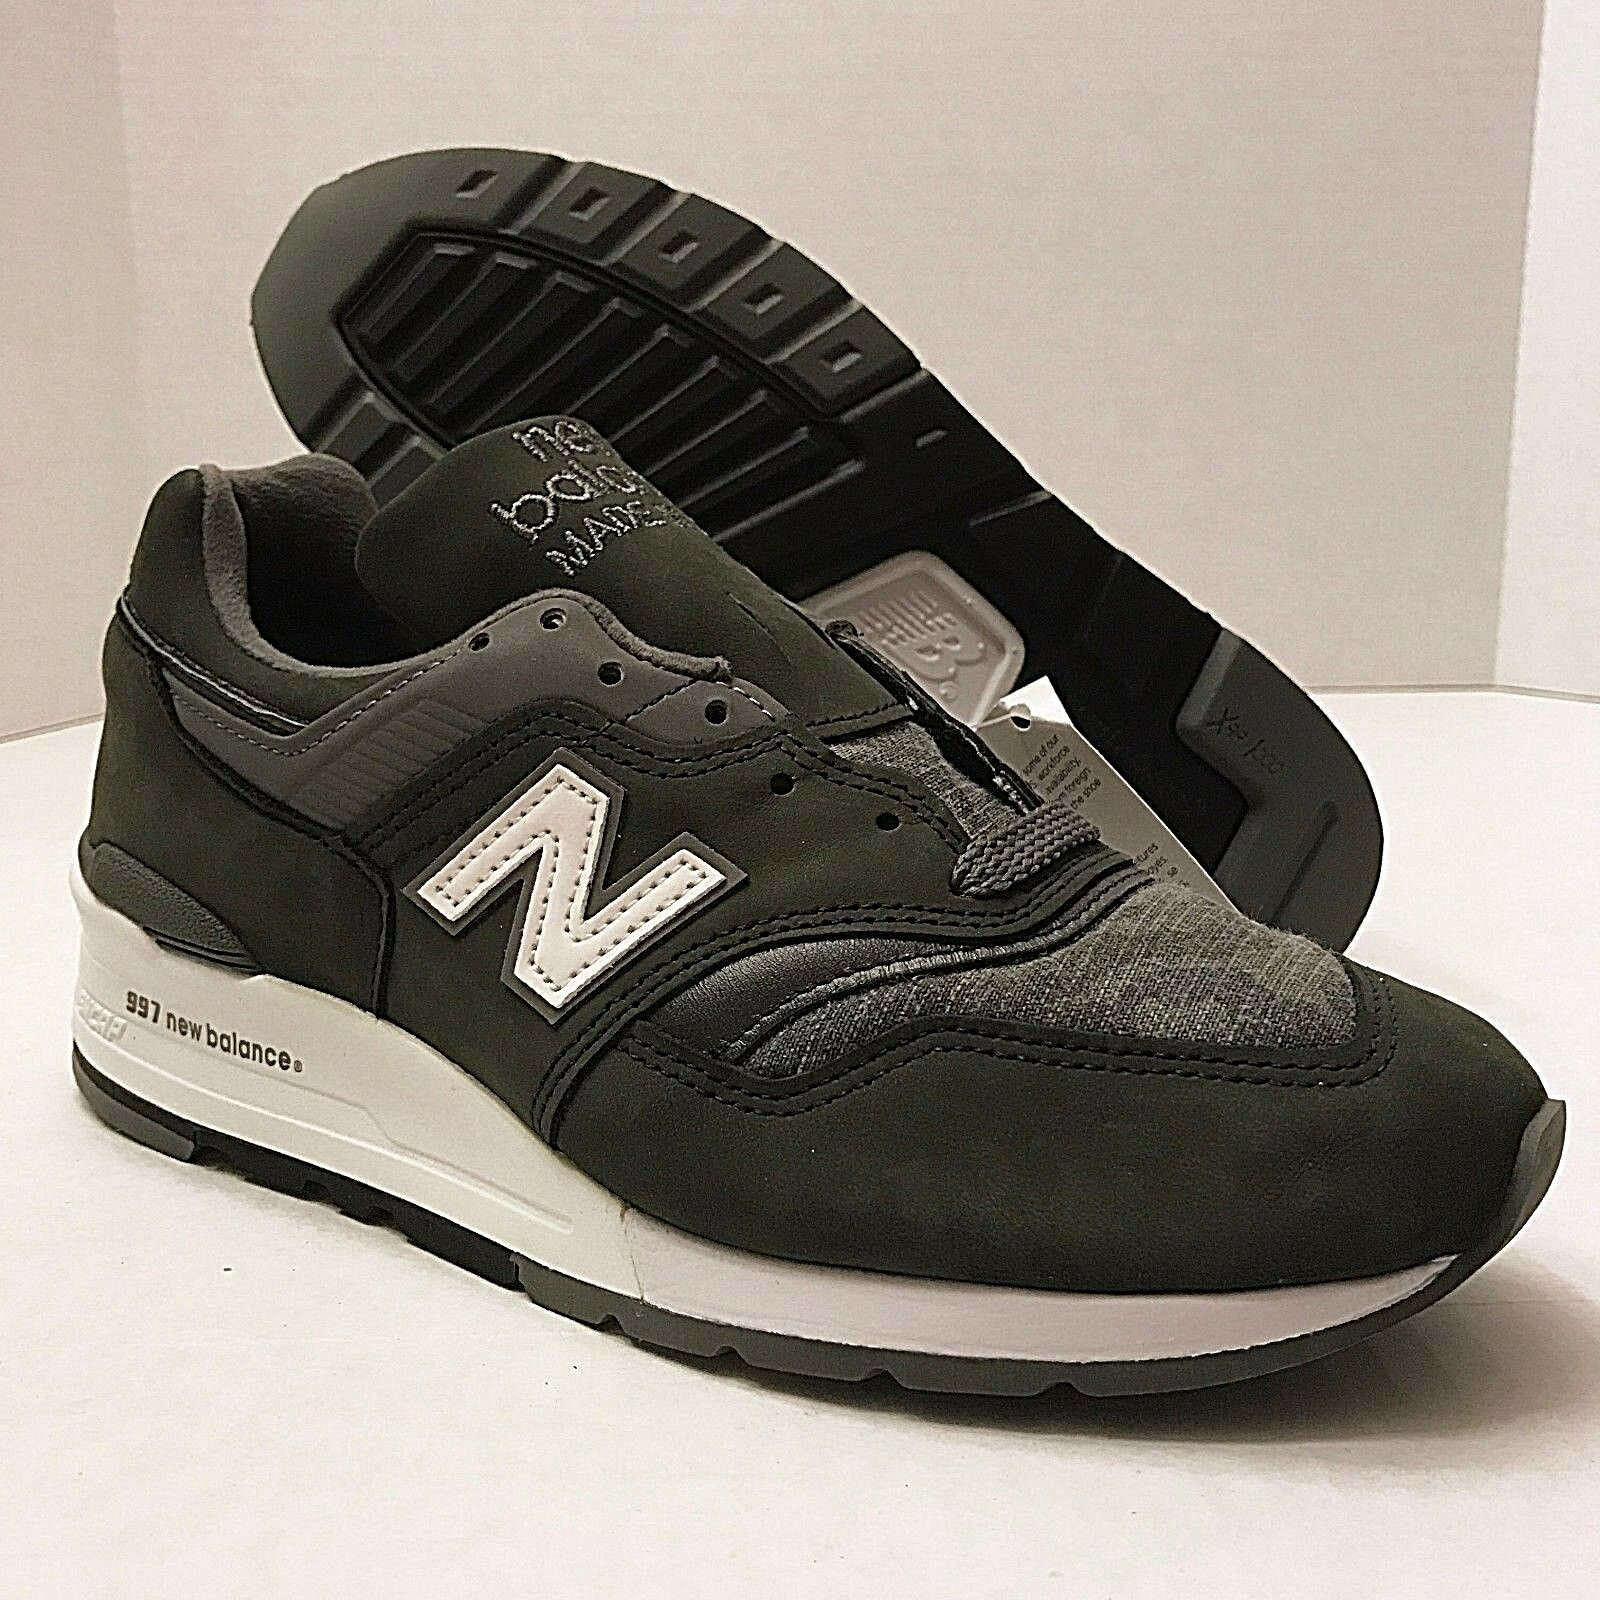 NEW BALANCE 997 Age of Exploration Shoes Made in USA Grey MENS 6.5 or WOMENS 8